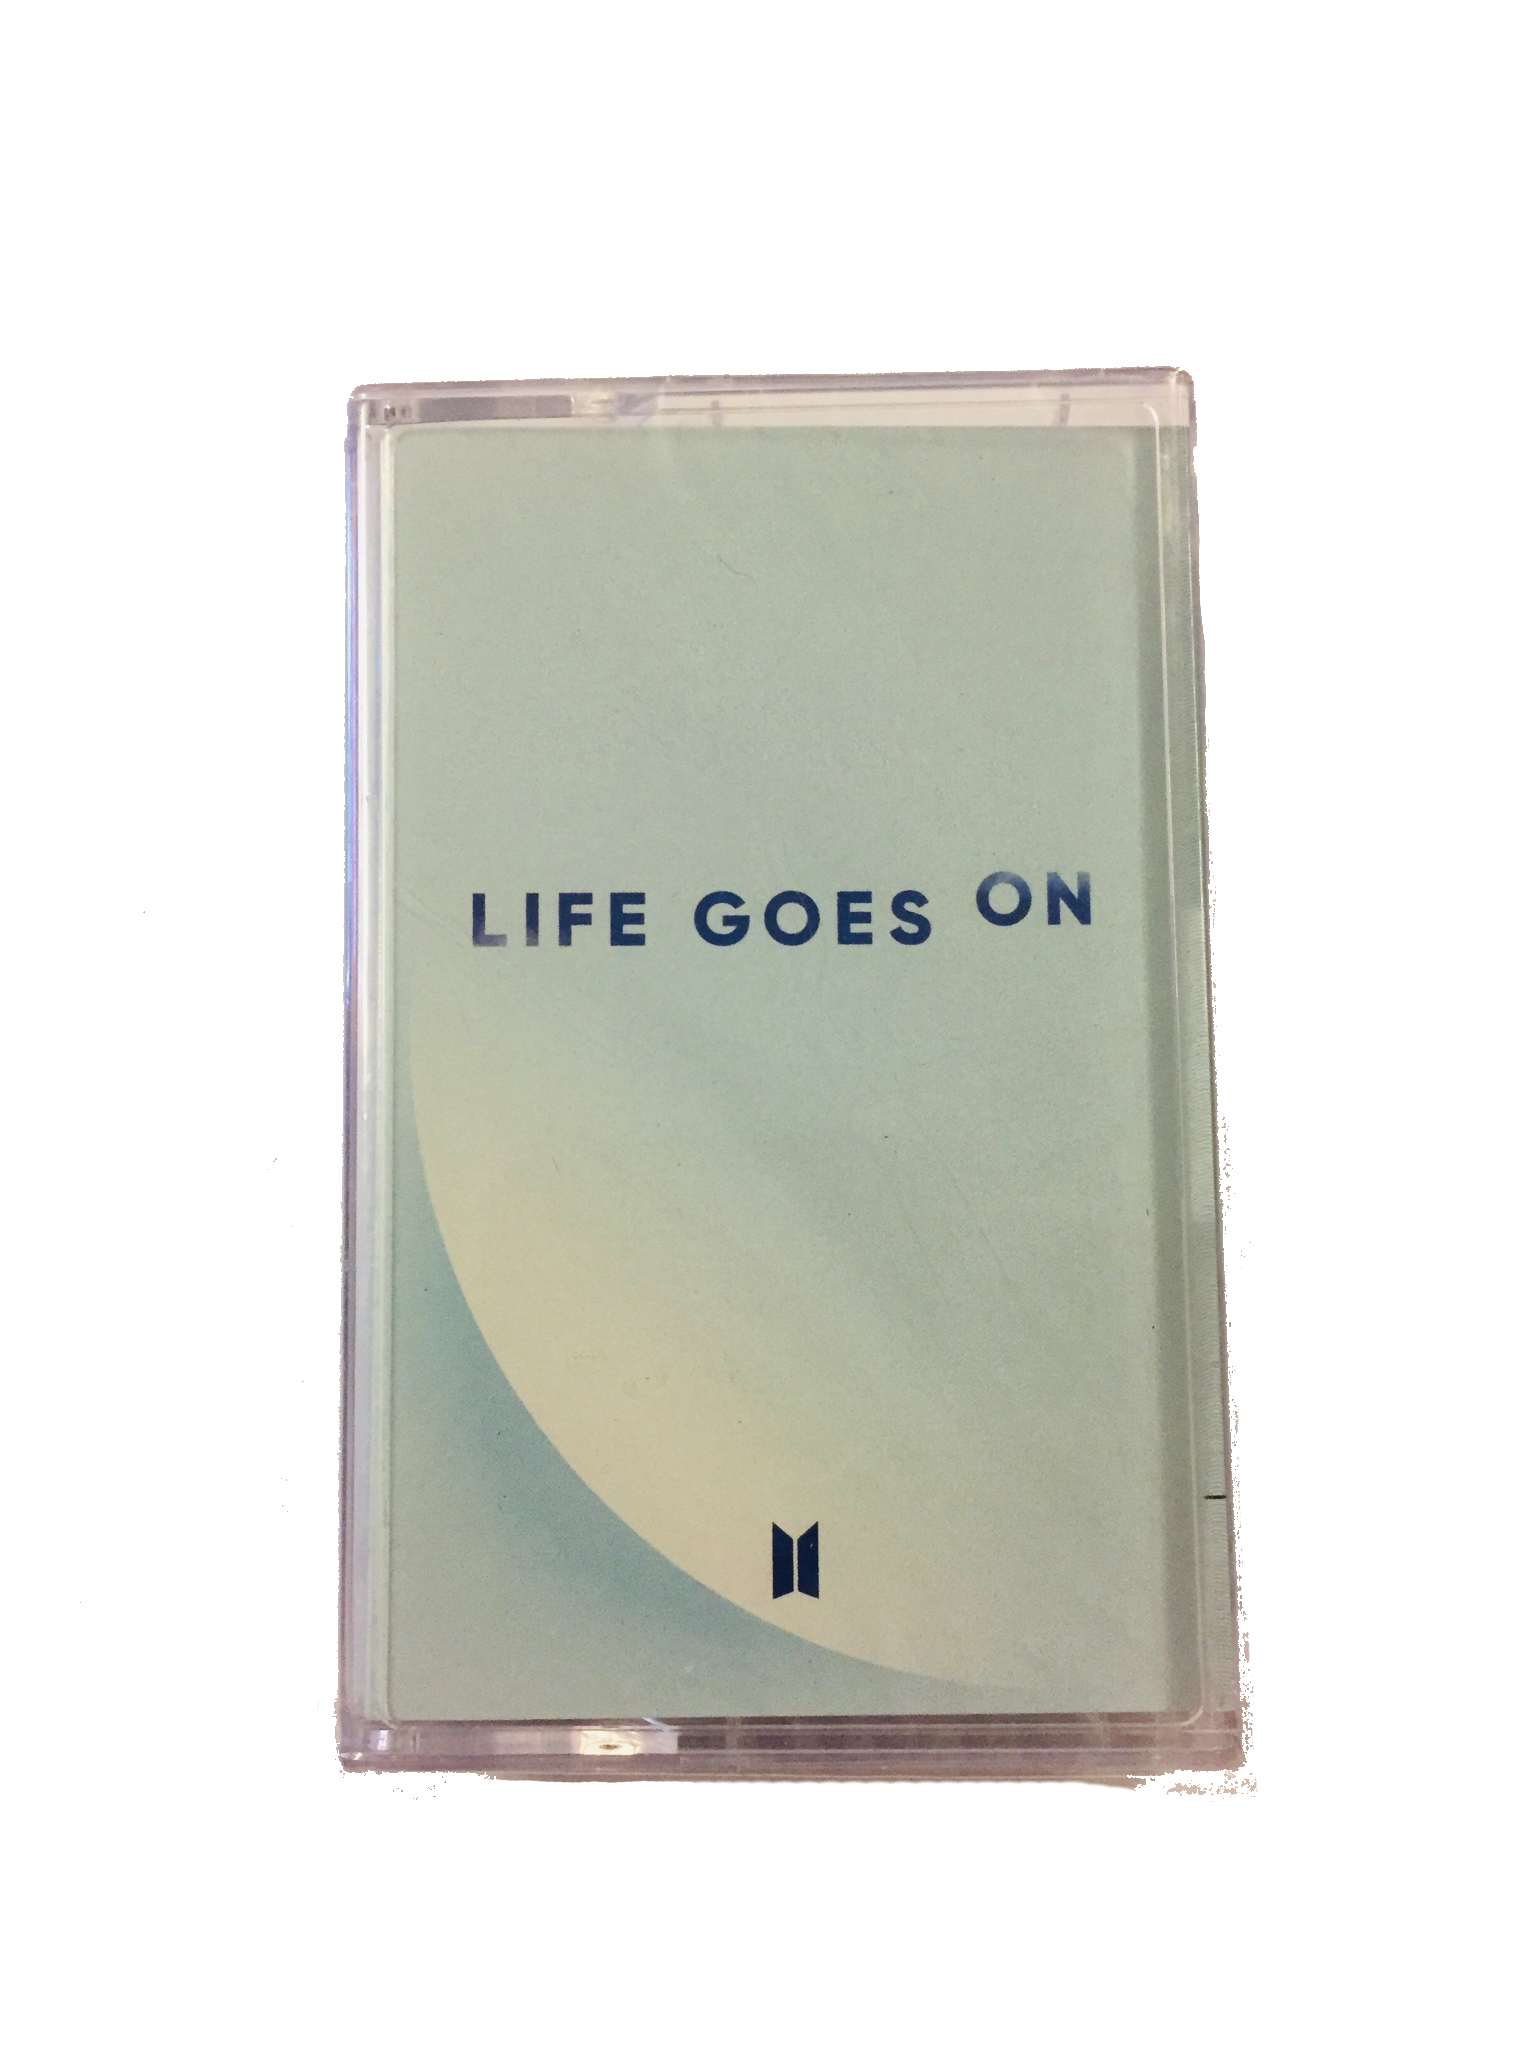 BTS – Life Goes On (cassette single)